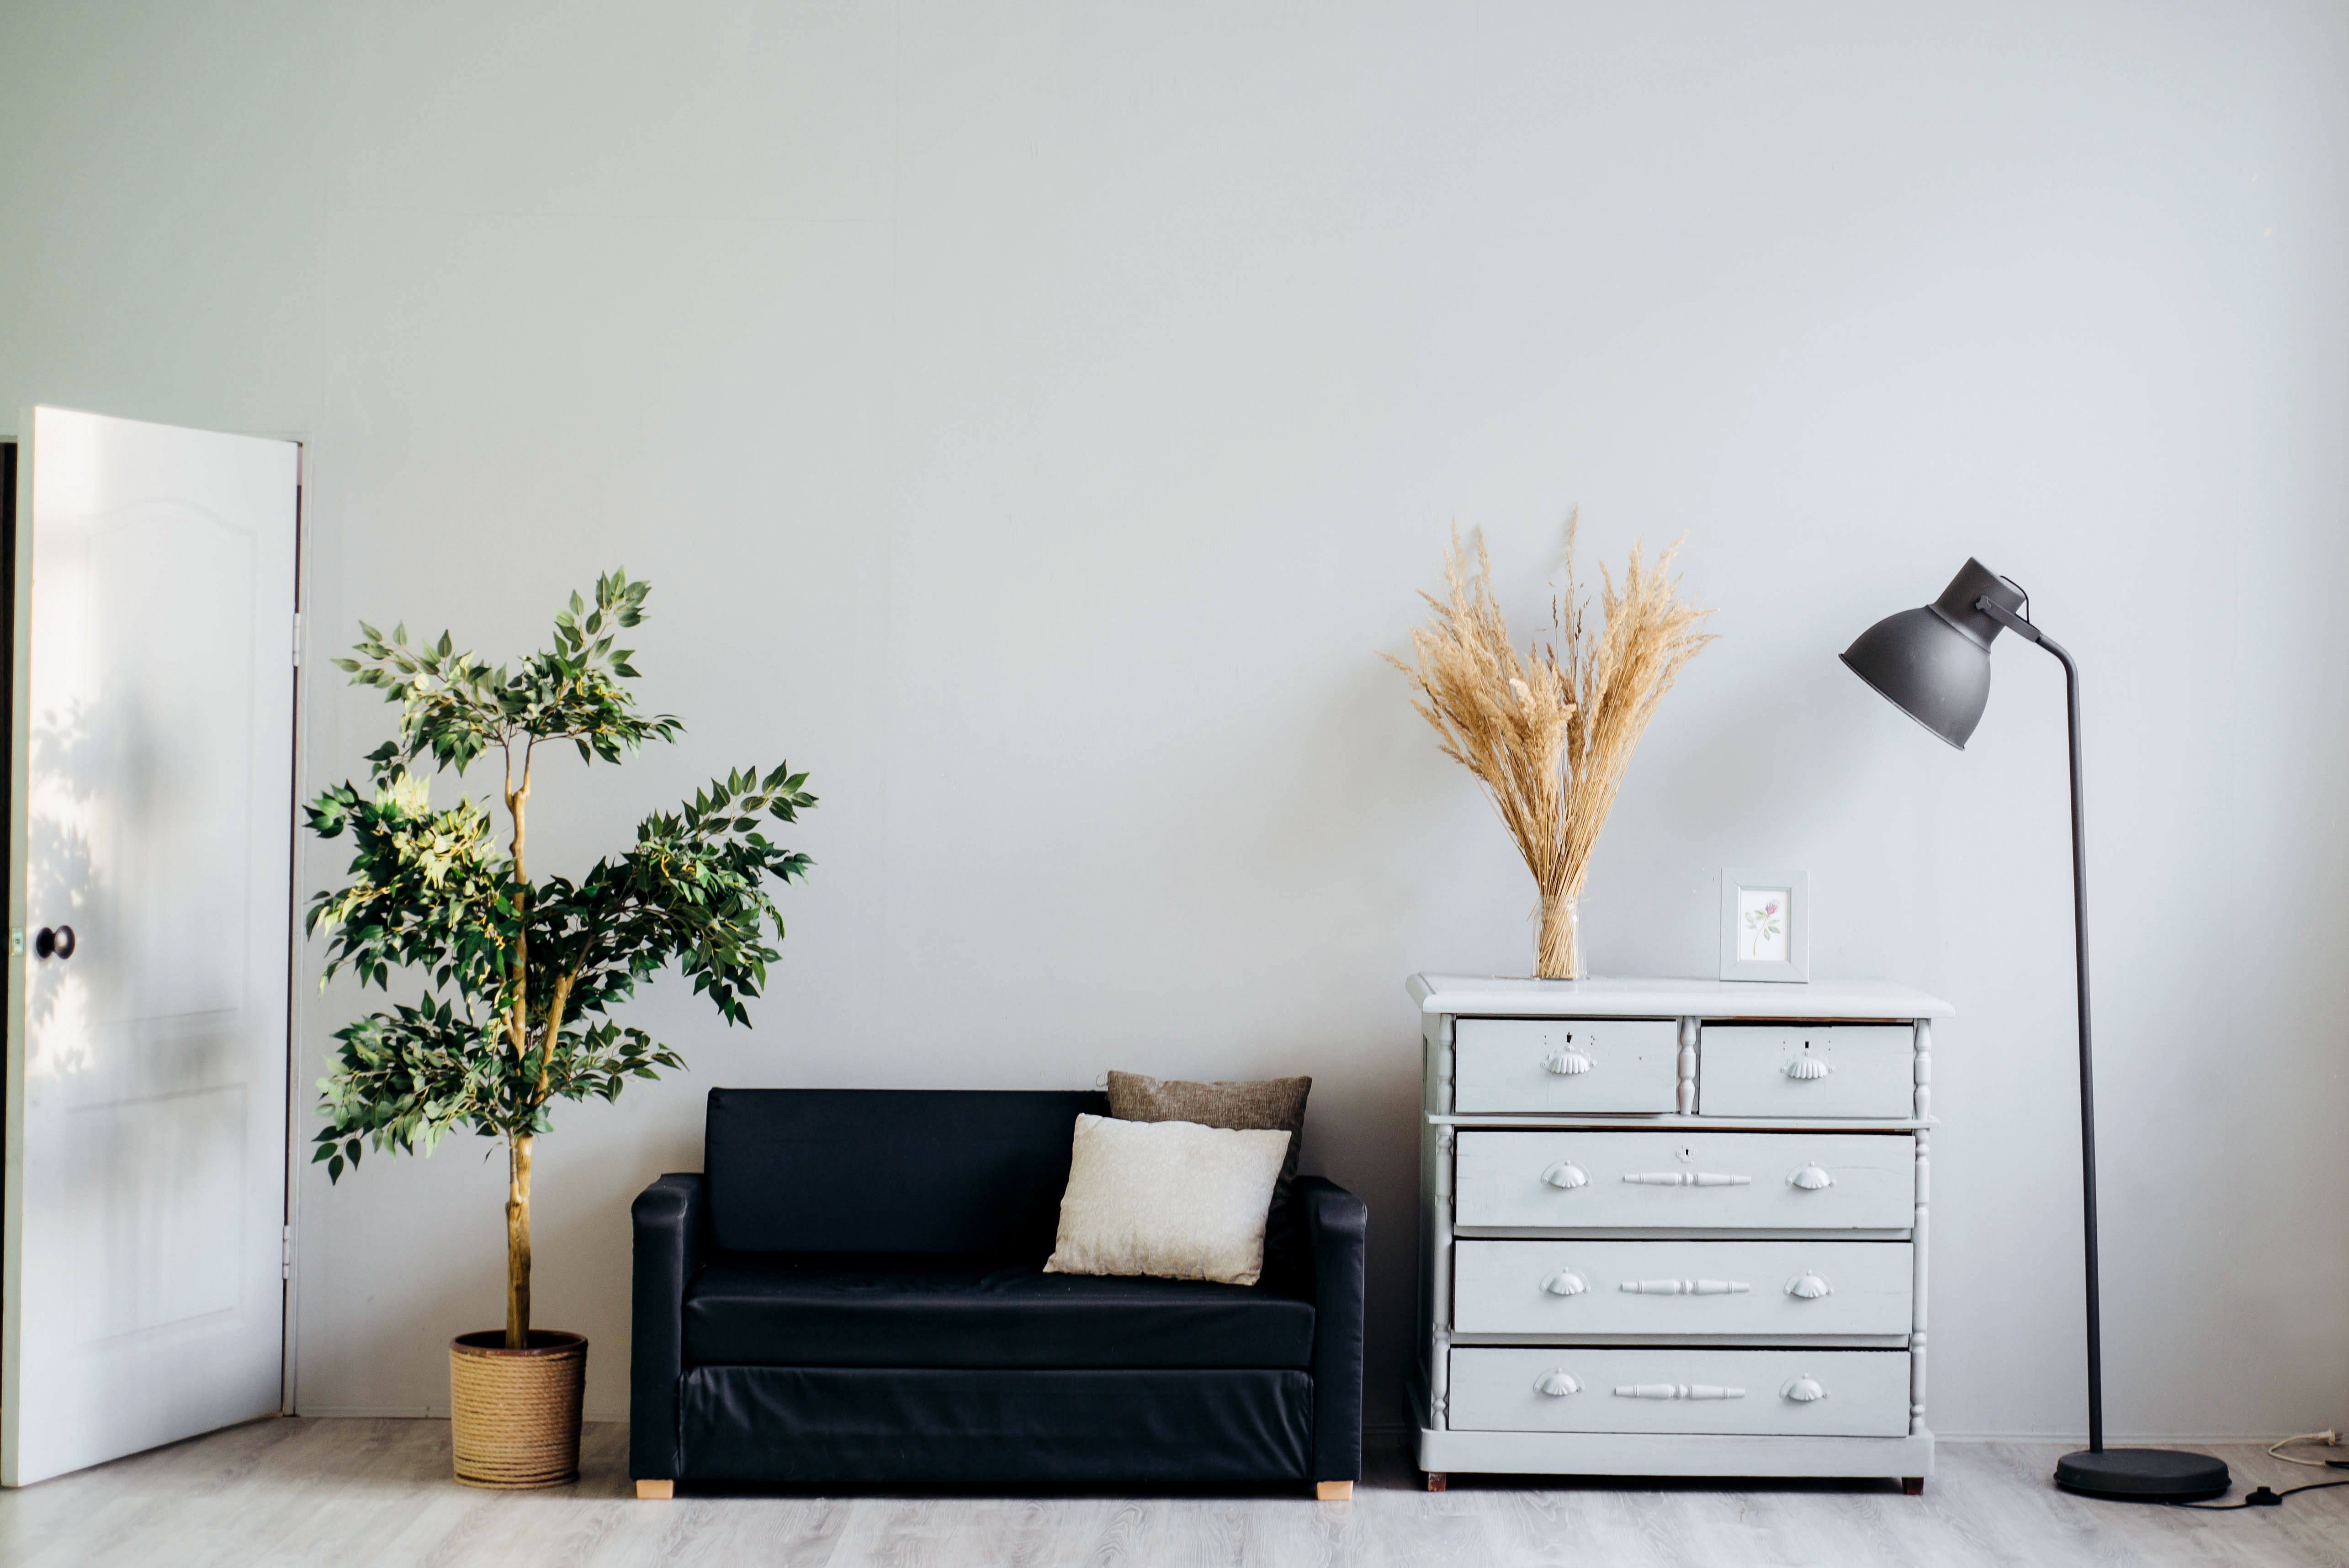 Decorating ideas for rental